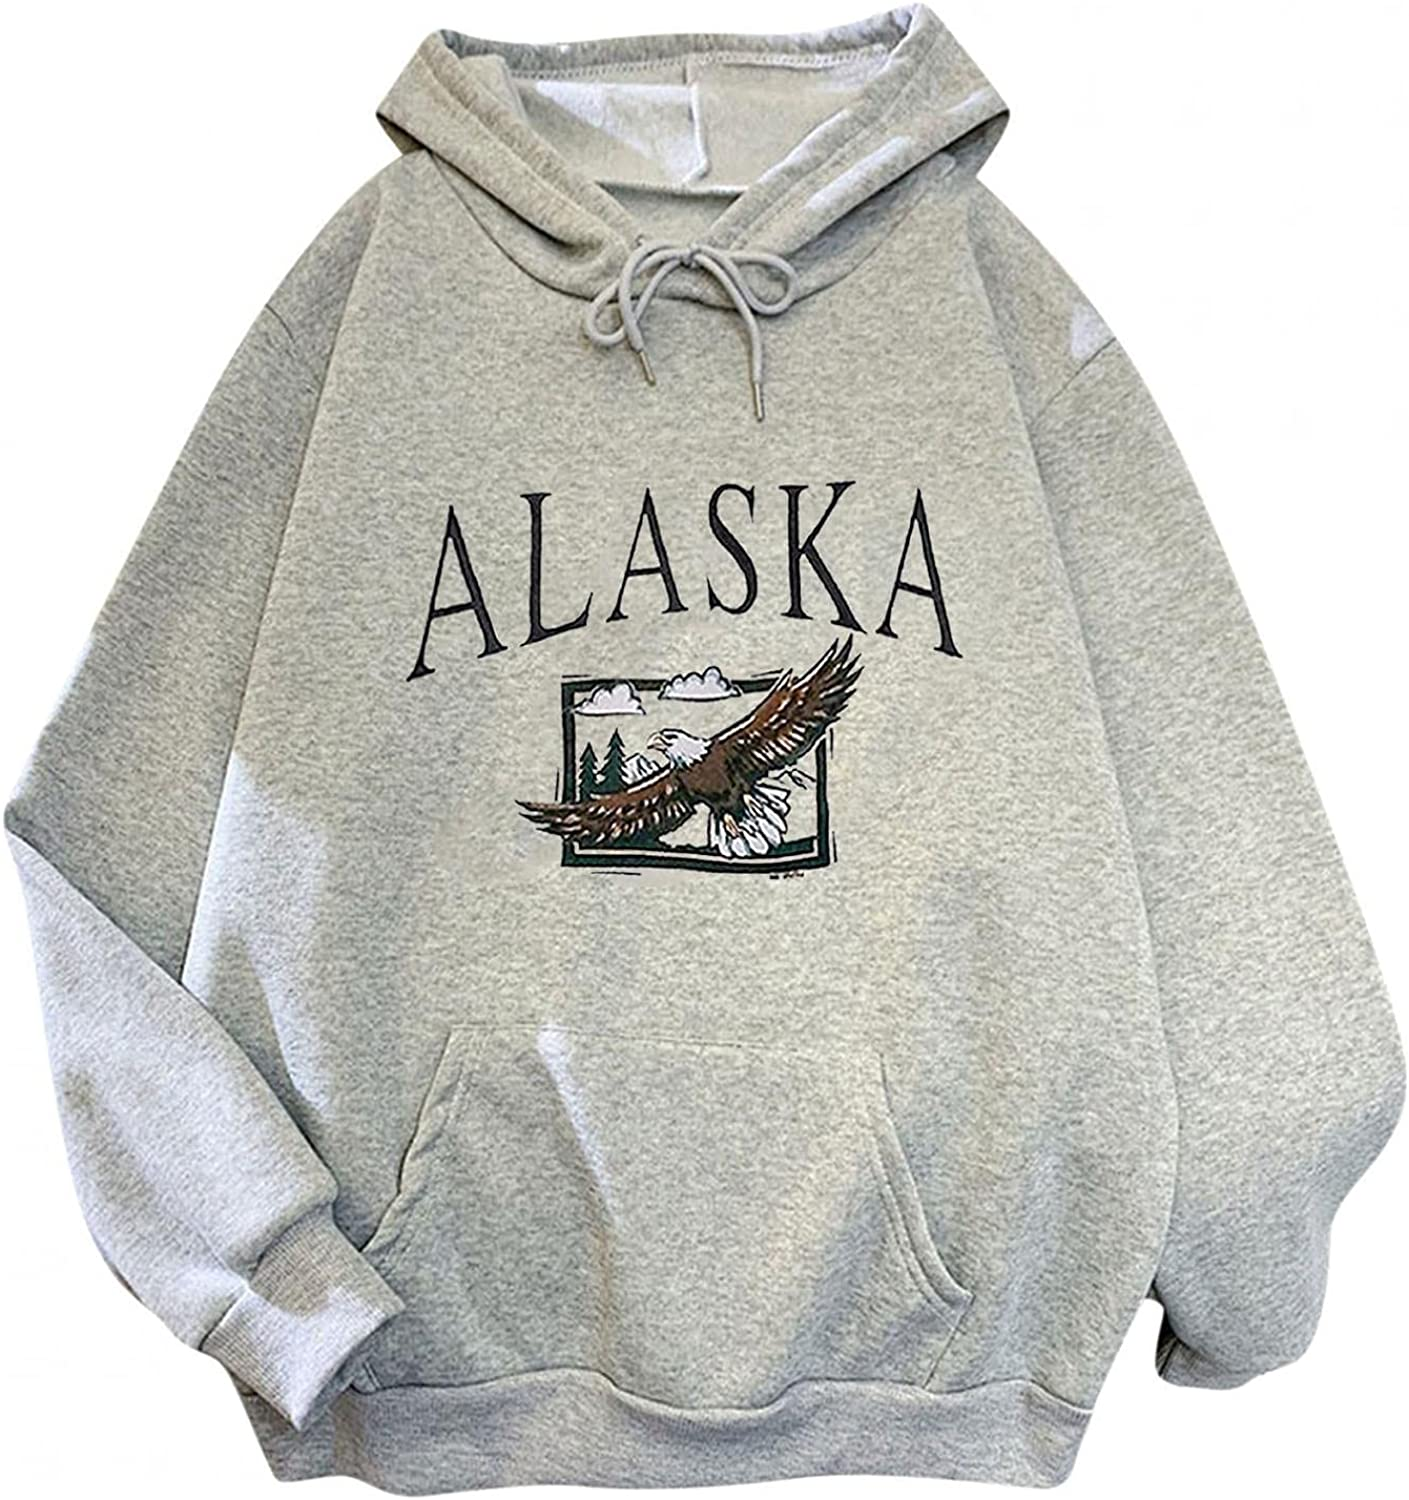 Qunkii Women's Casual Hooded Sweatshirt,Teen Girls Soft Alaska Letter Print Pullover Loose Hoodie Size M-3XL with Pocket